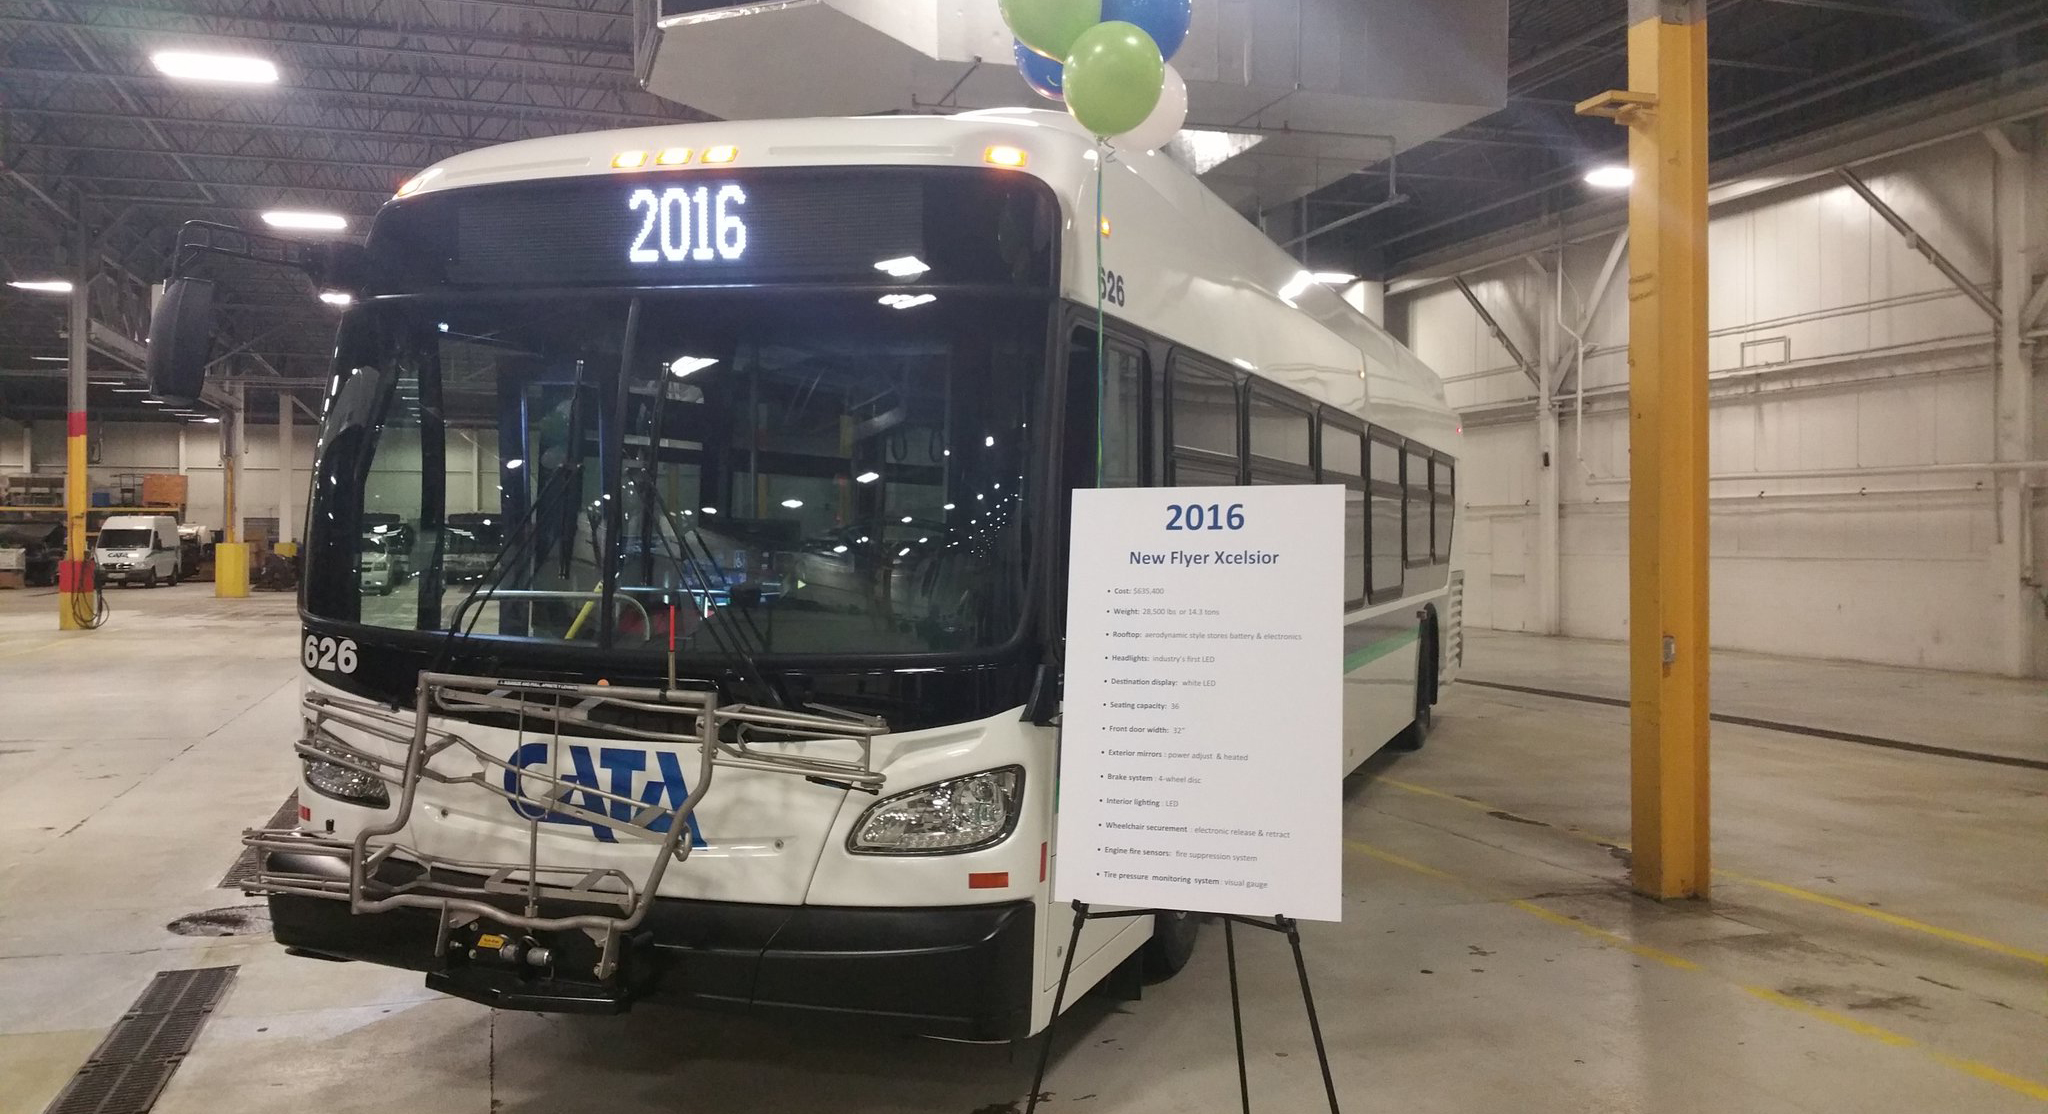 CATA's improved hybrid Xcelsior model pictured at the debut event.